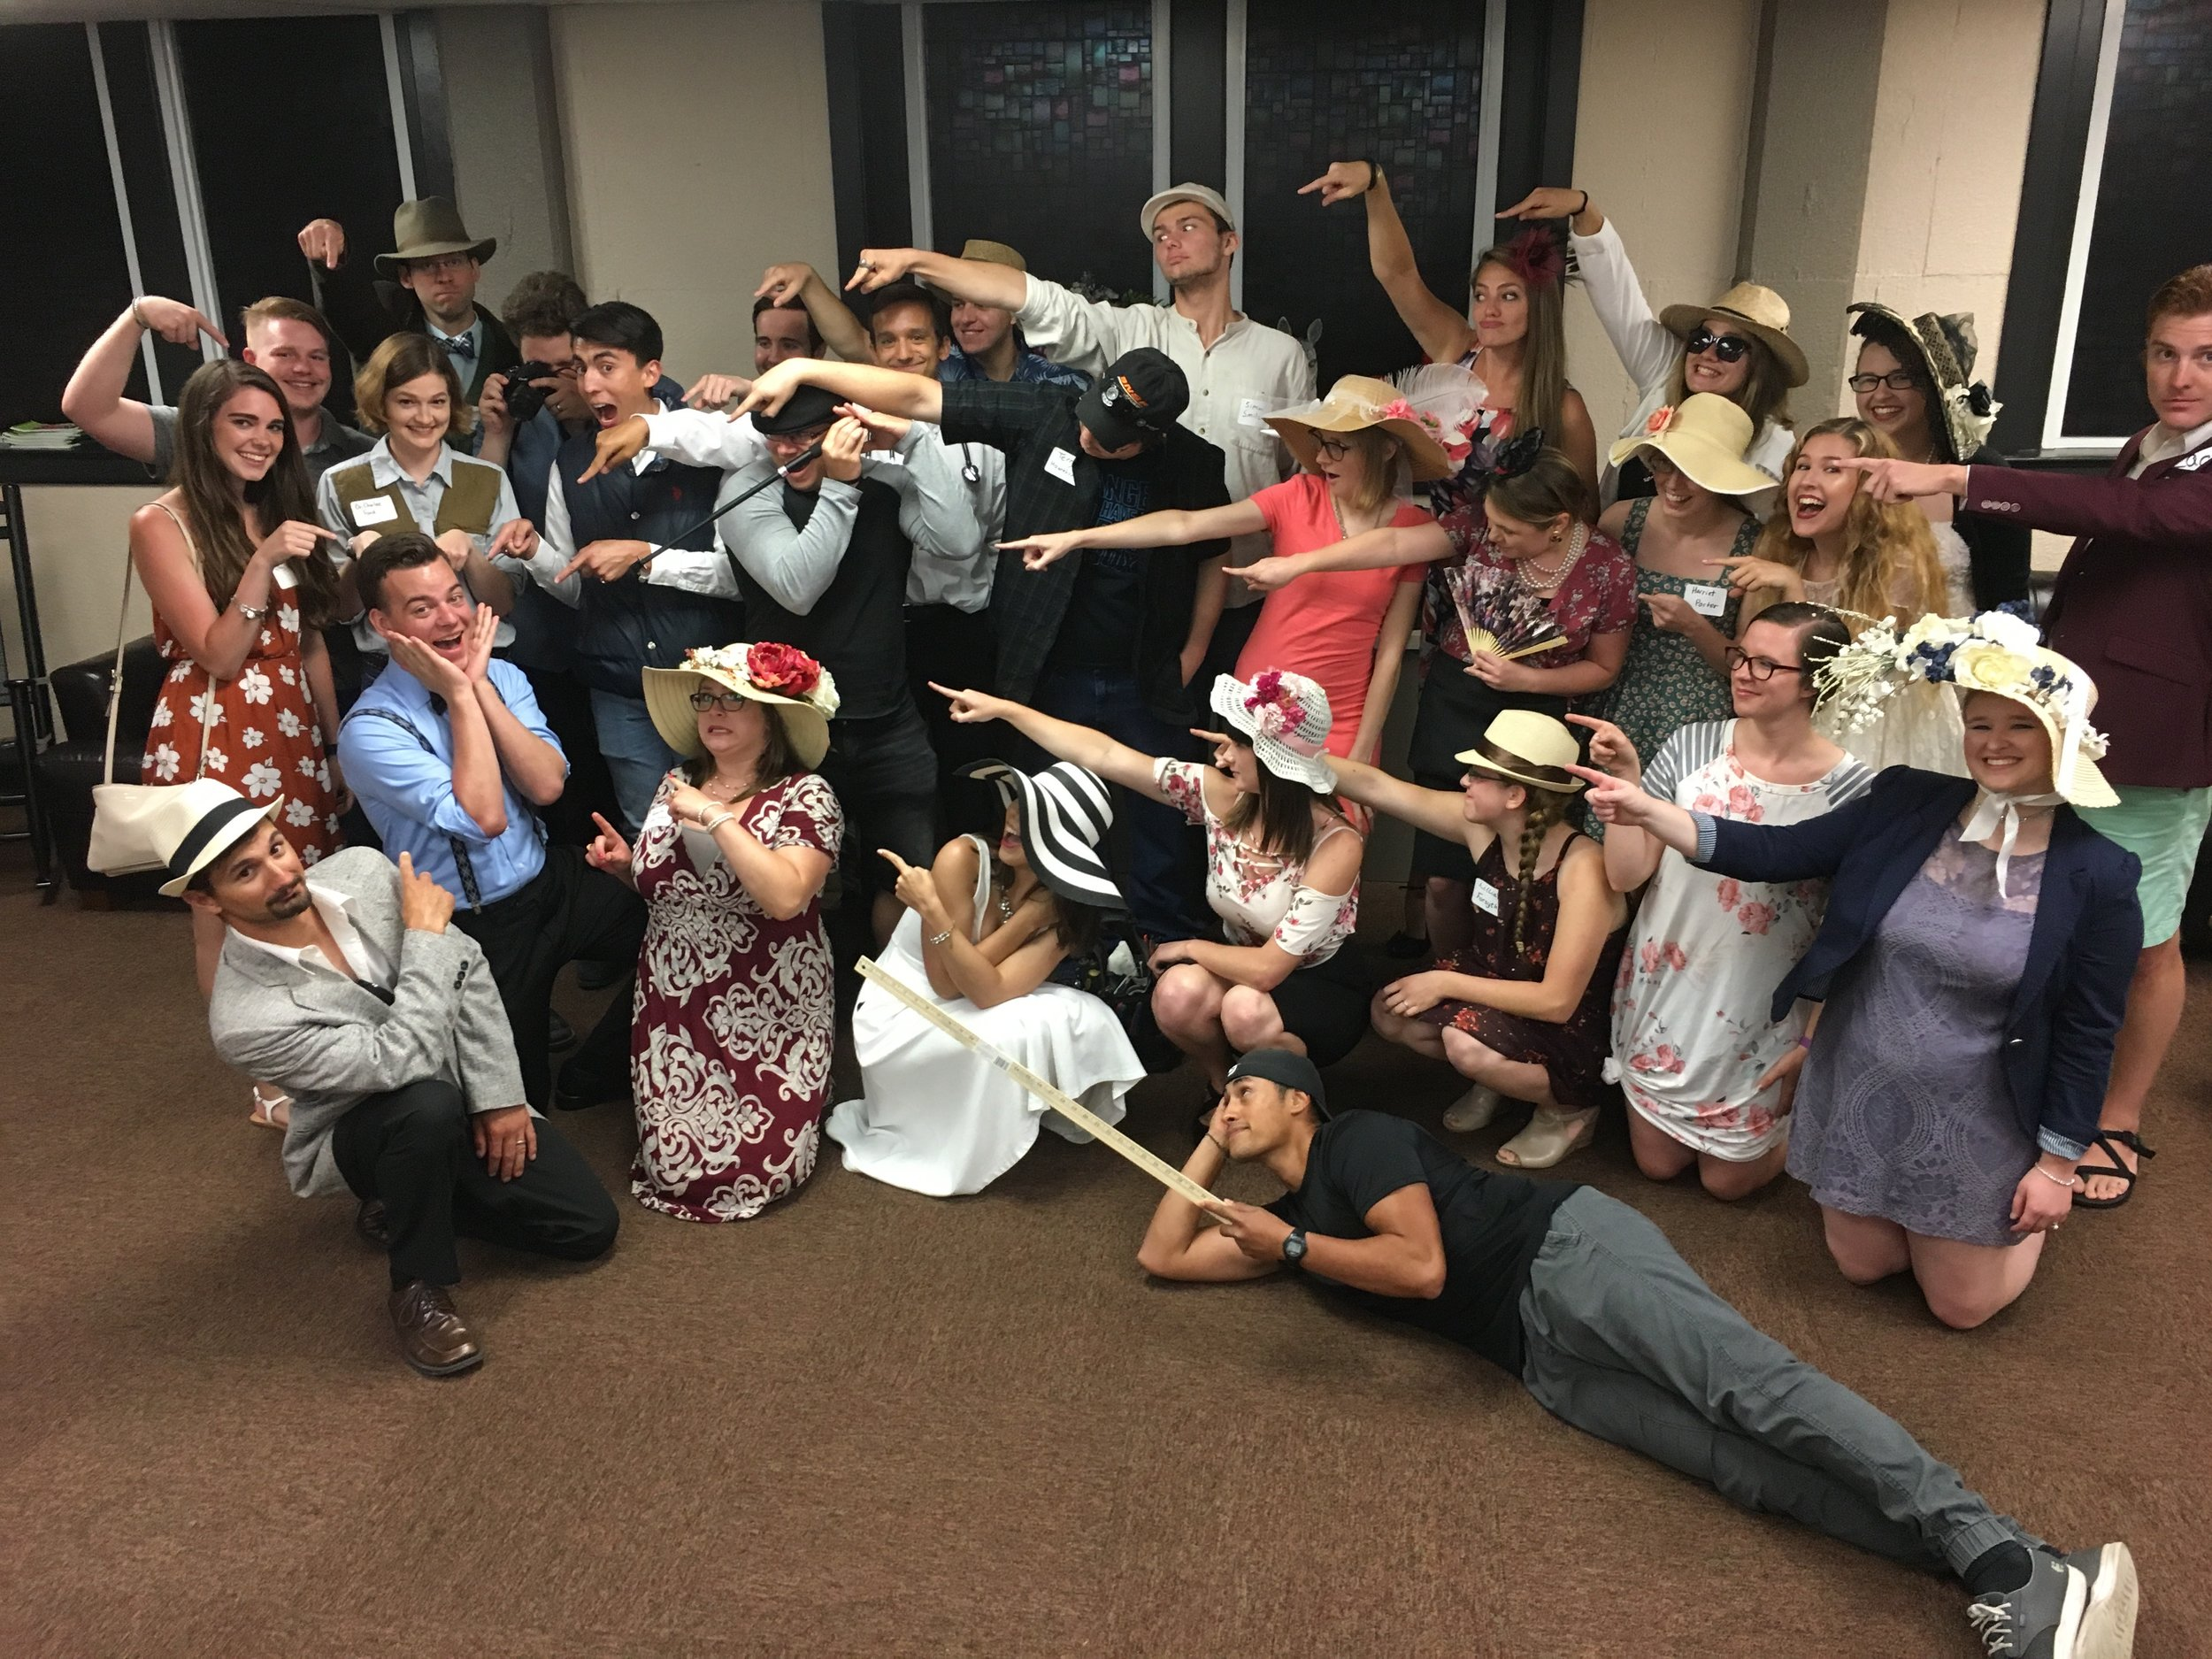 Mystery Party III (7-7-2018) Entire Group Pointing.jpg